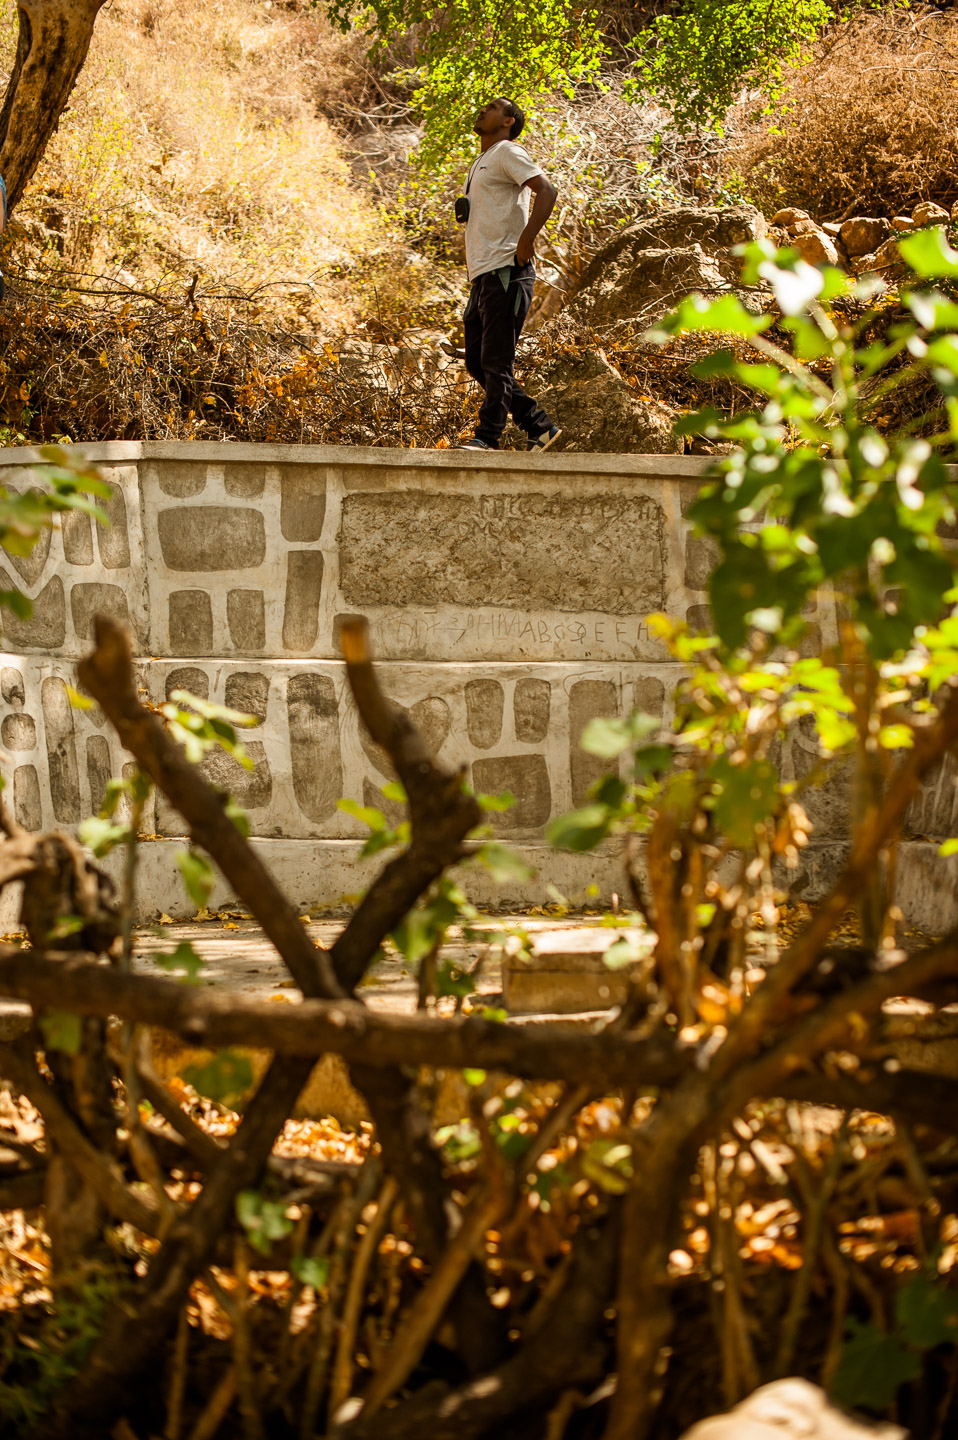 Wosen Girma, head of the Arba Minch branch of HOPE International Development Agency, inspects the capped source that provides the people of Koshale with clean water. Ethiopia on January 23, 2014.  Copyright © 2014 Art Zaratsyan